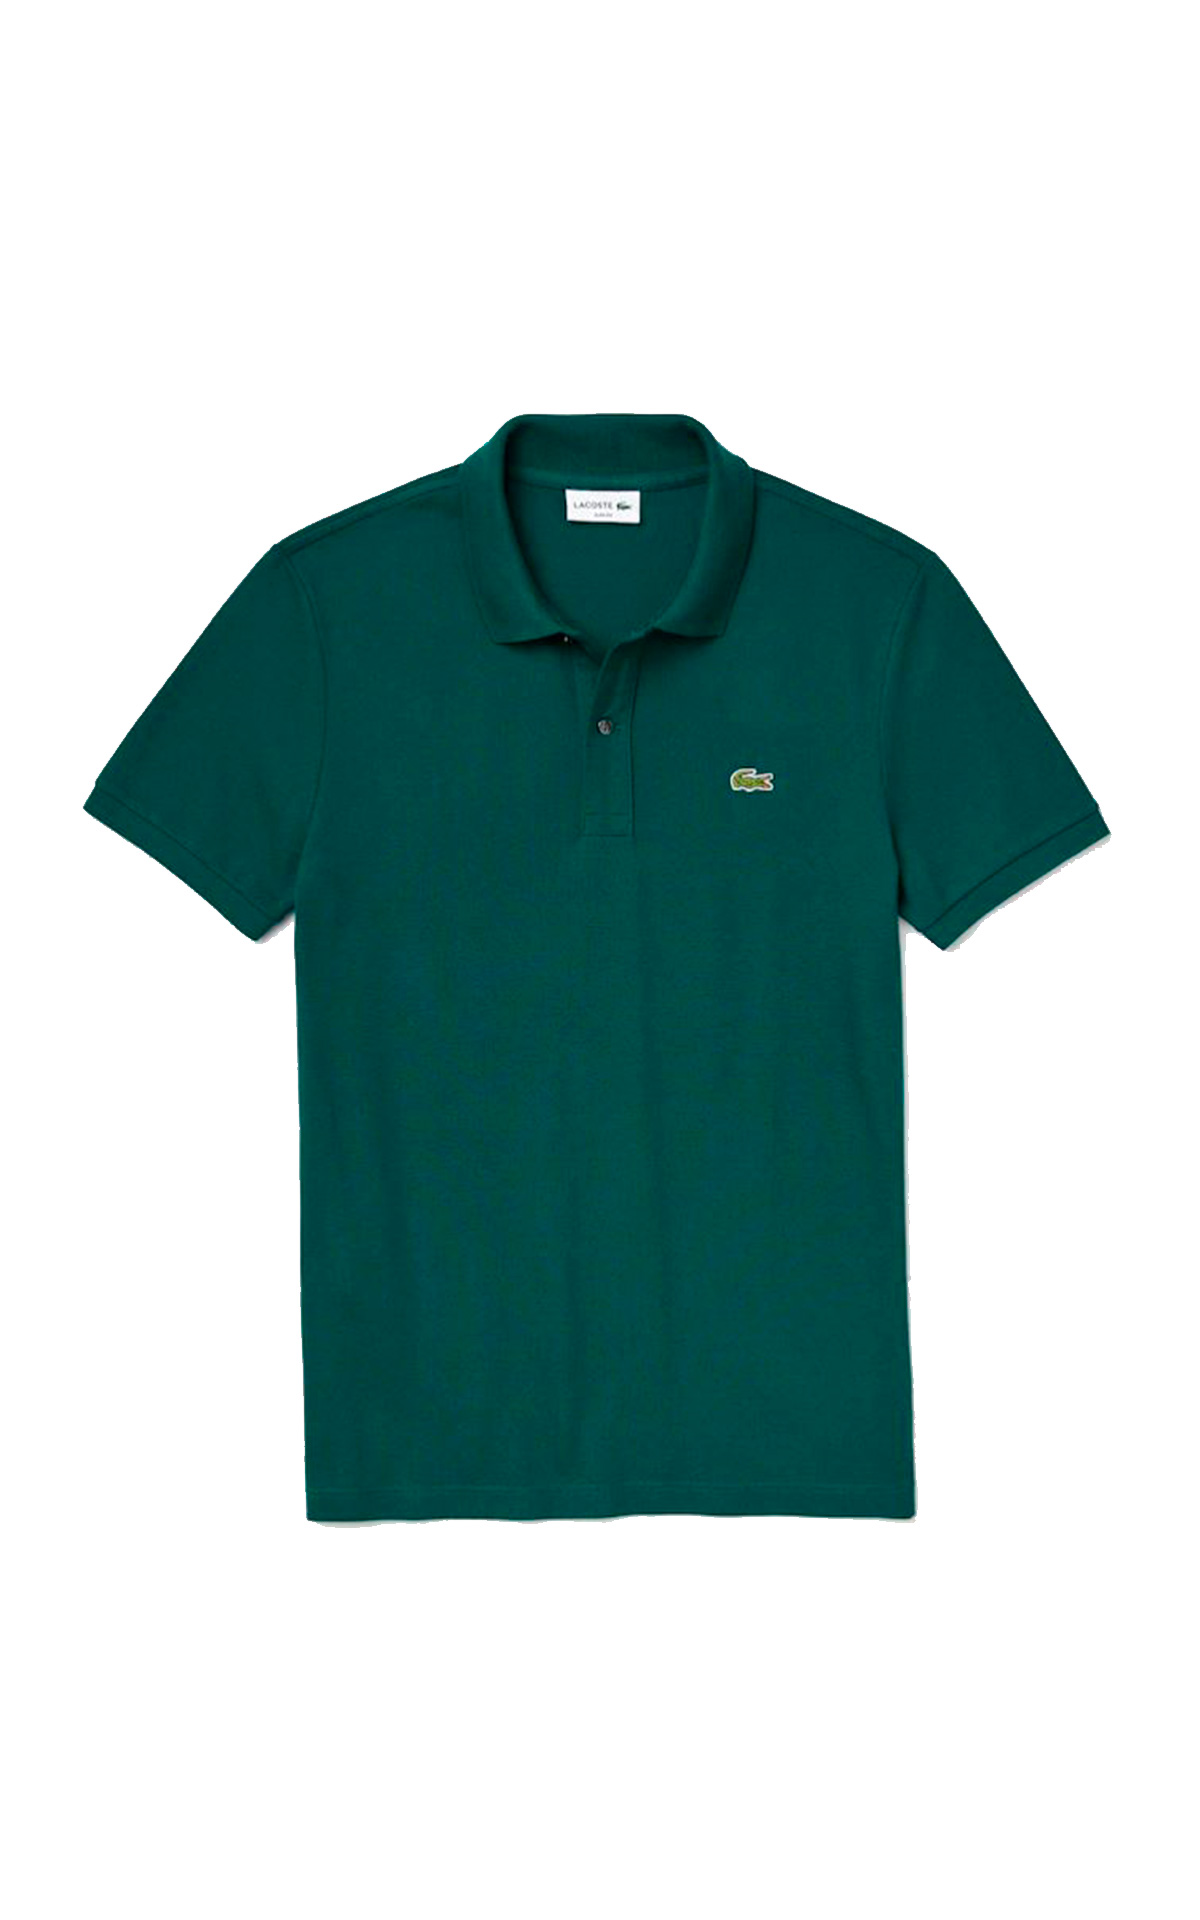 Green polo shirt Lacoste